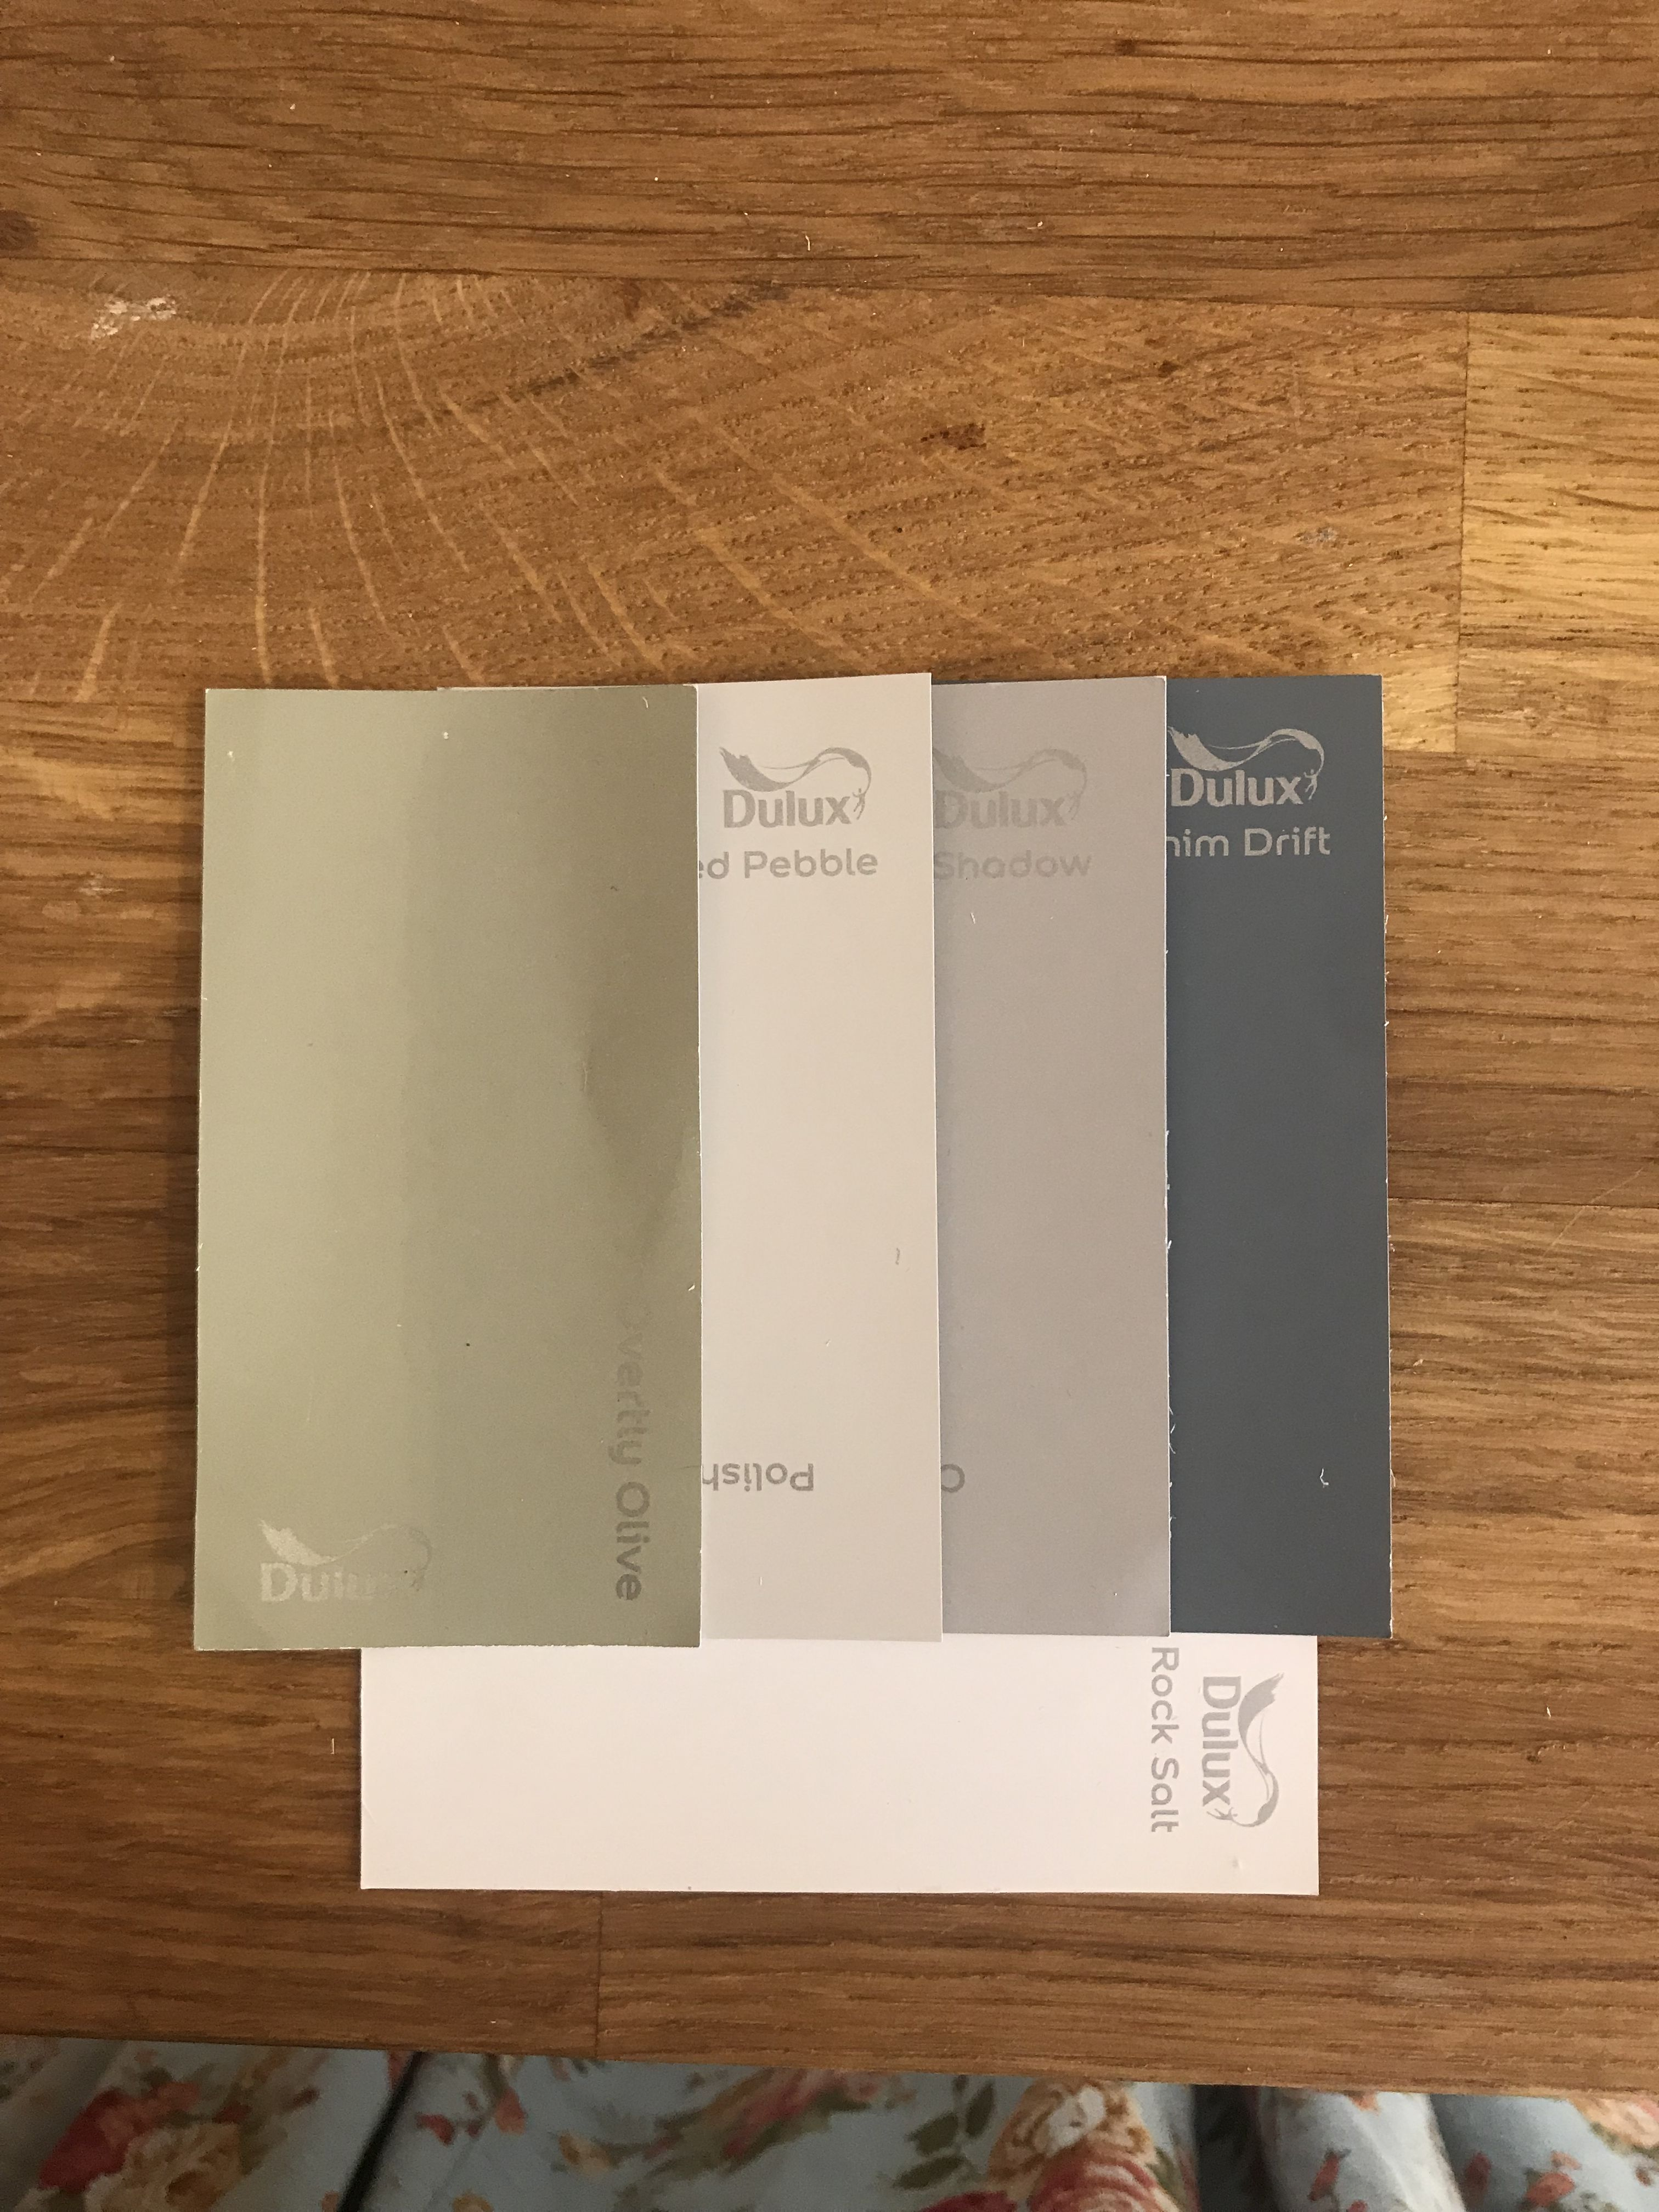 Dulux Colour Palette For Flat In Order Of The Rooms And The Hall Front Room Denim Drift Bedroom Chic Shadow Dulux Dulux Paint Colours Living Room Wall Color